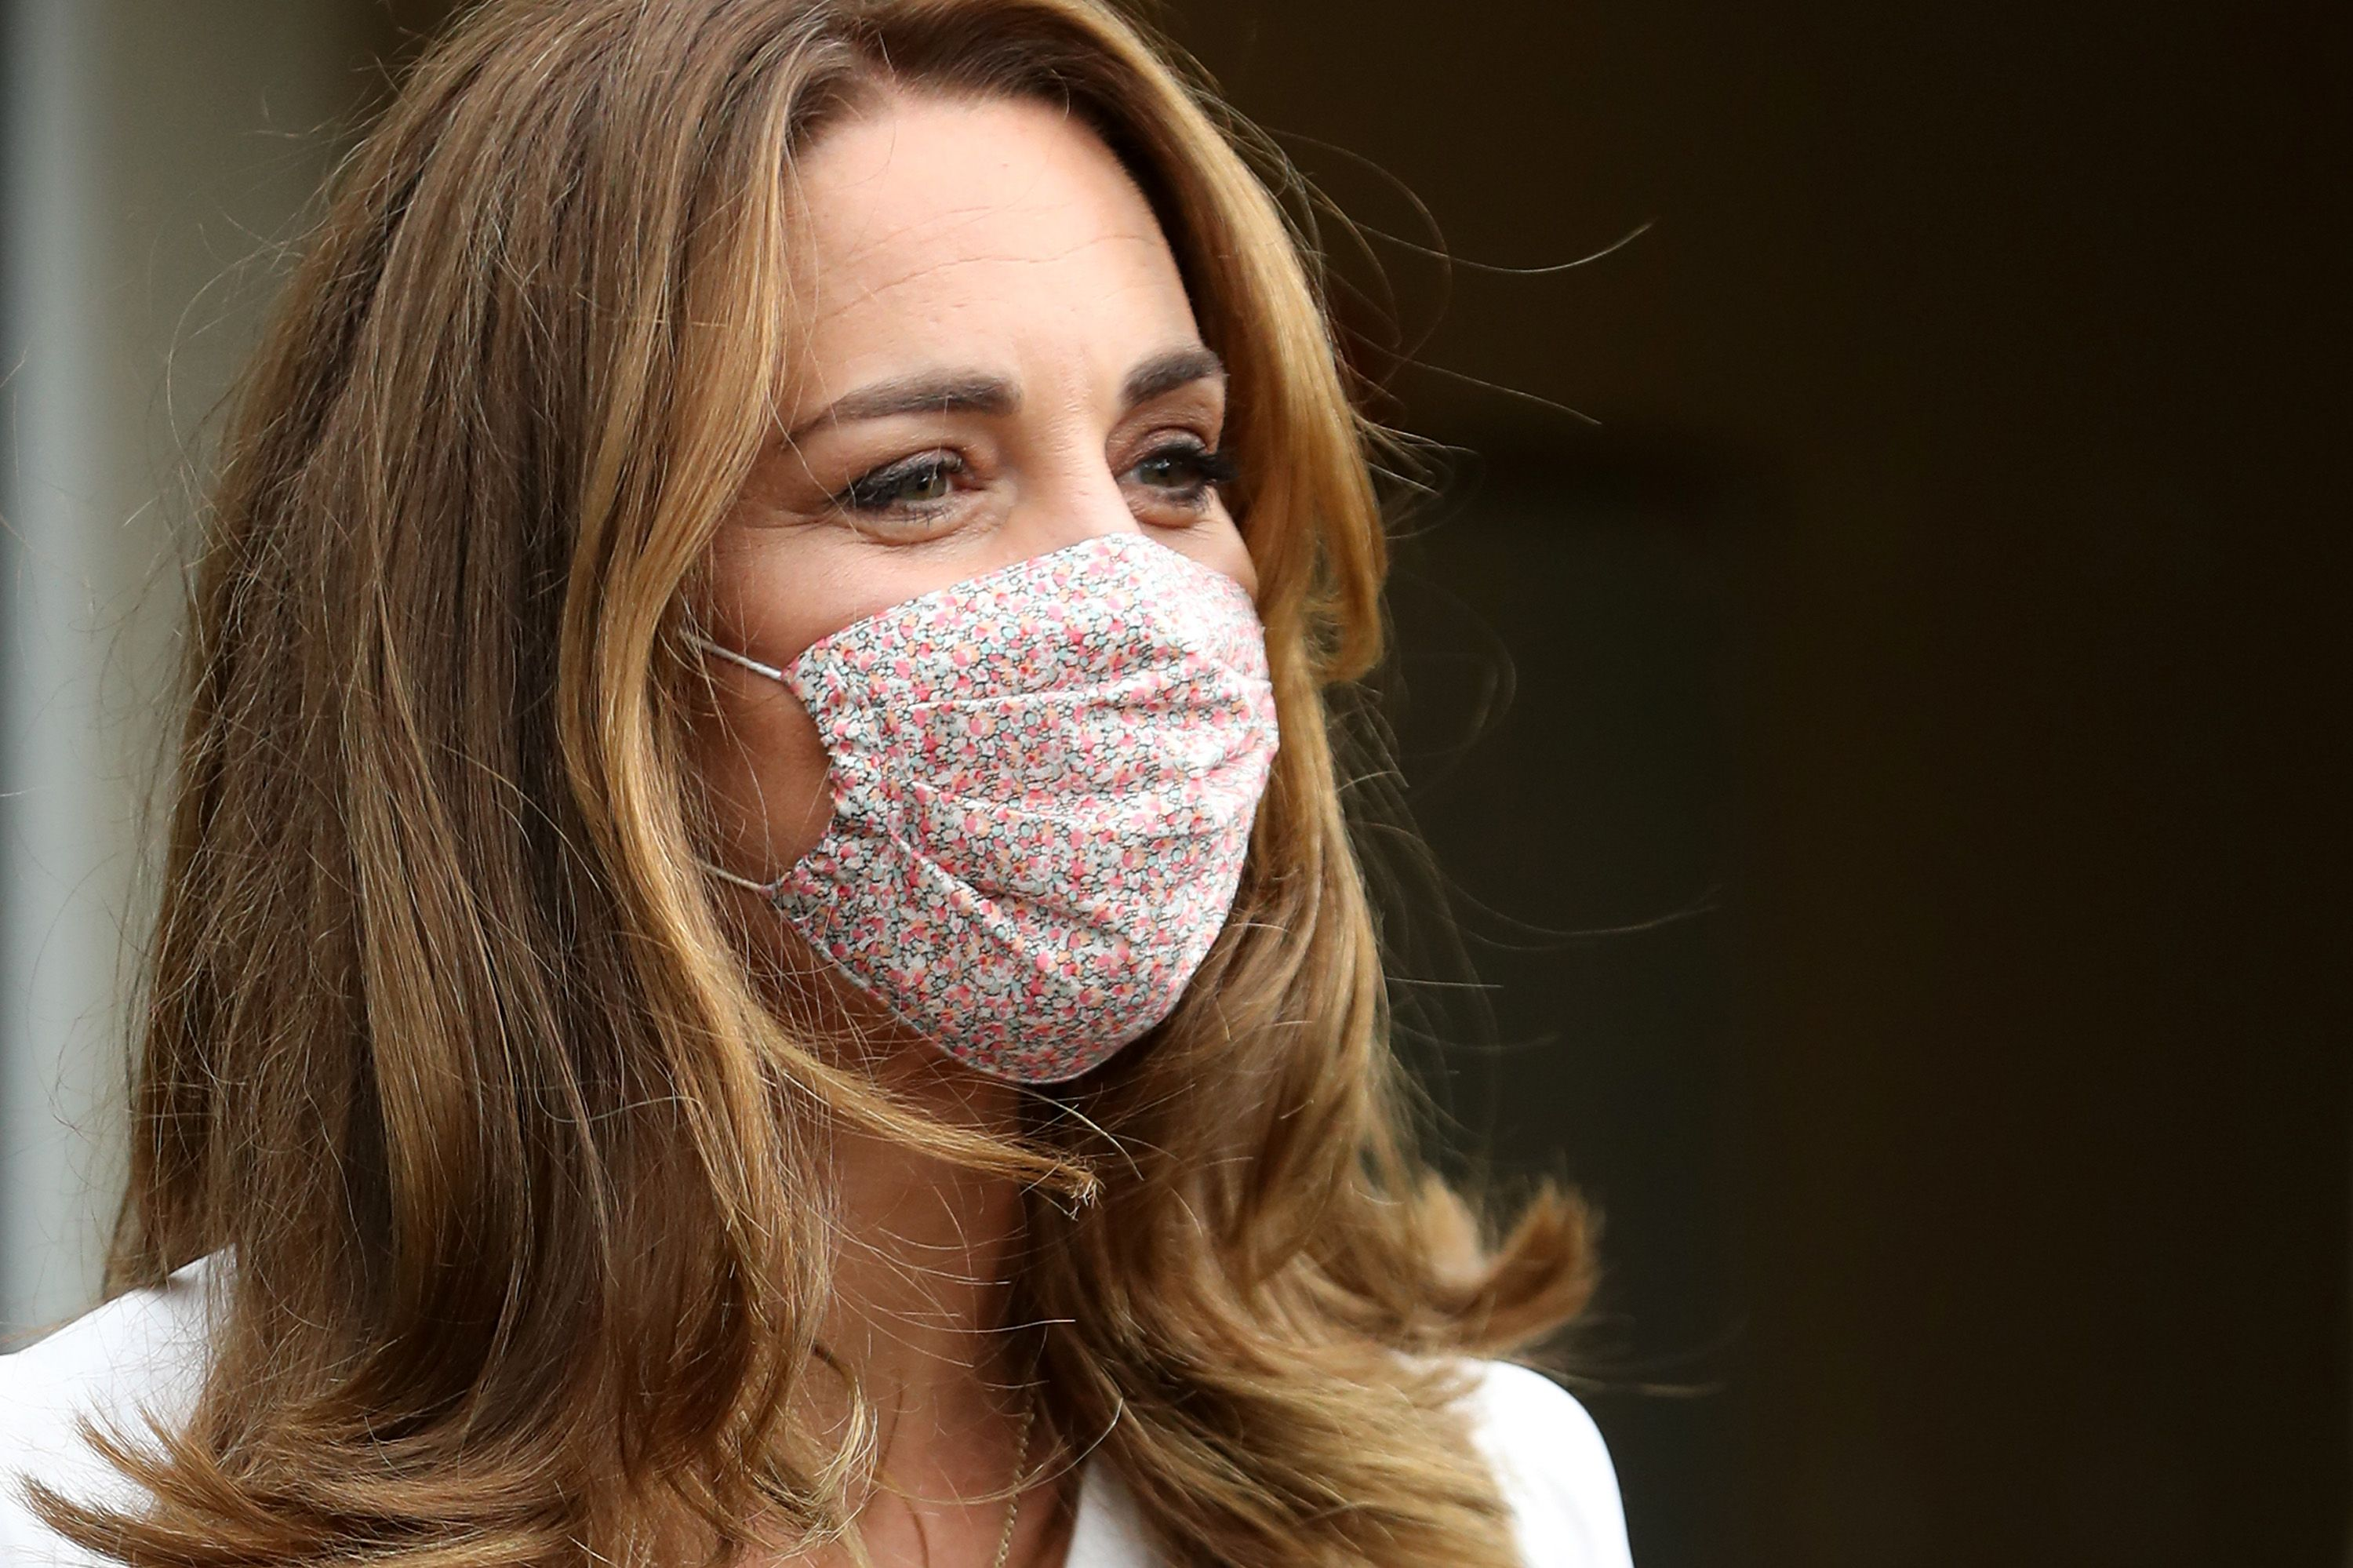 Kate Middleton has been pictured wearing a face mask for the first time